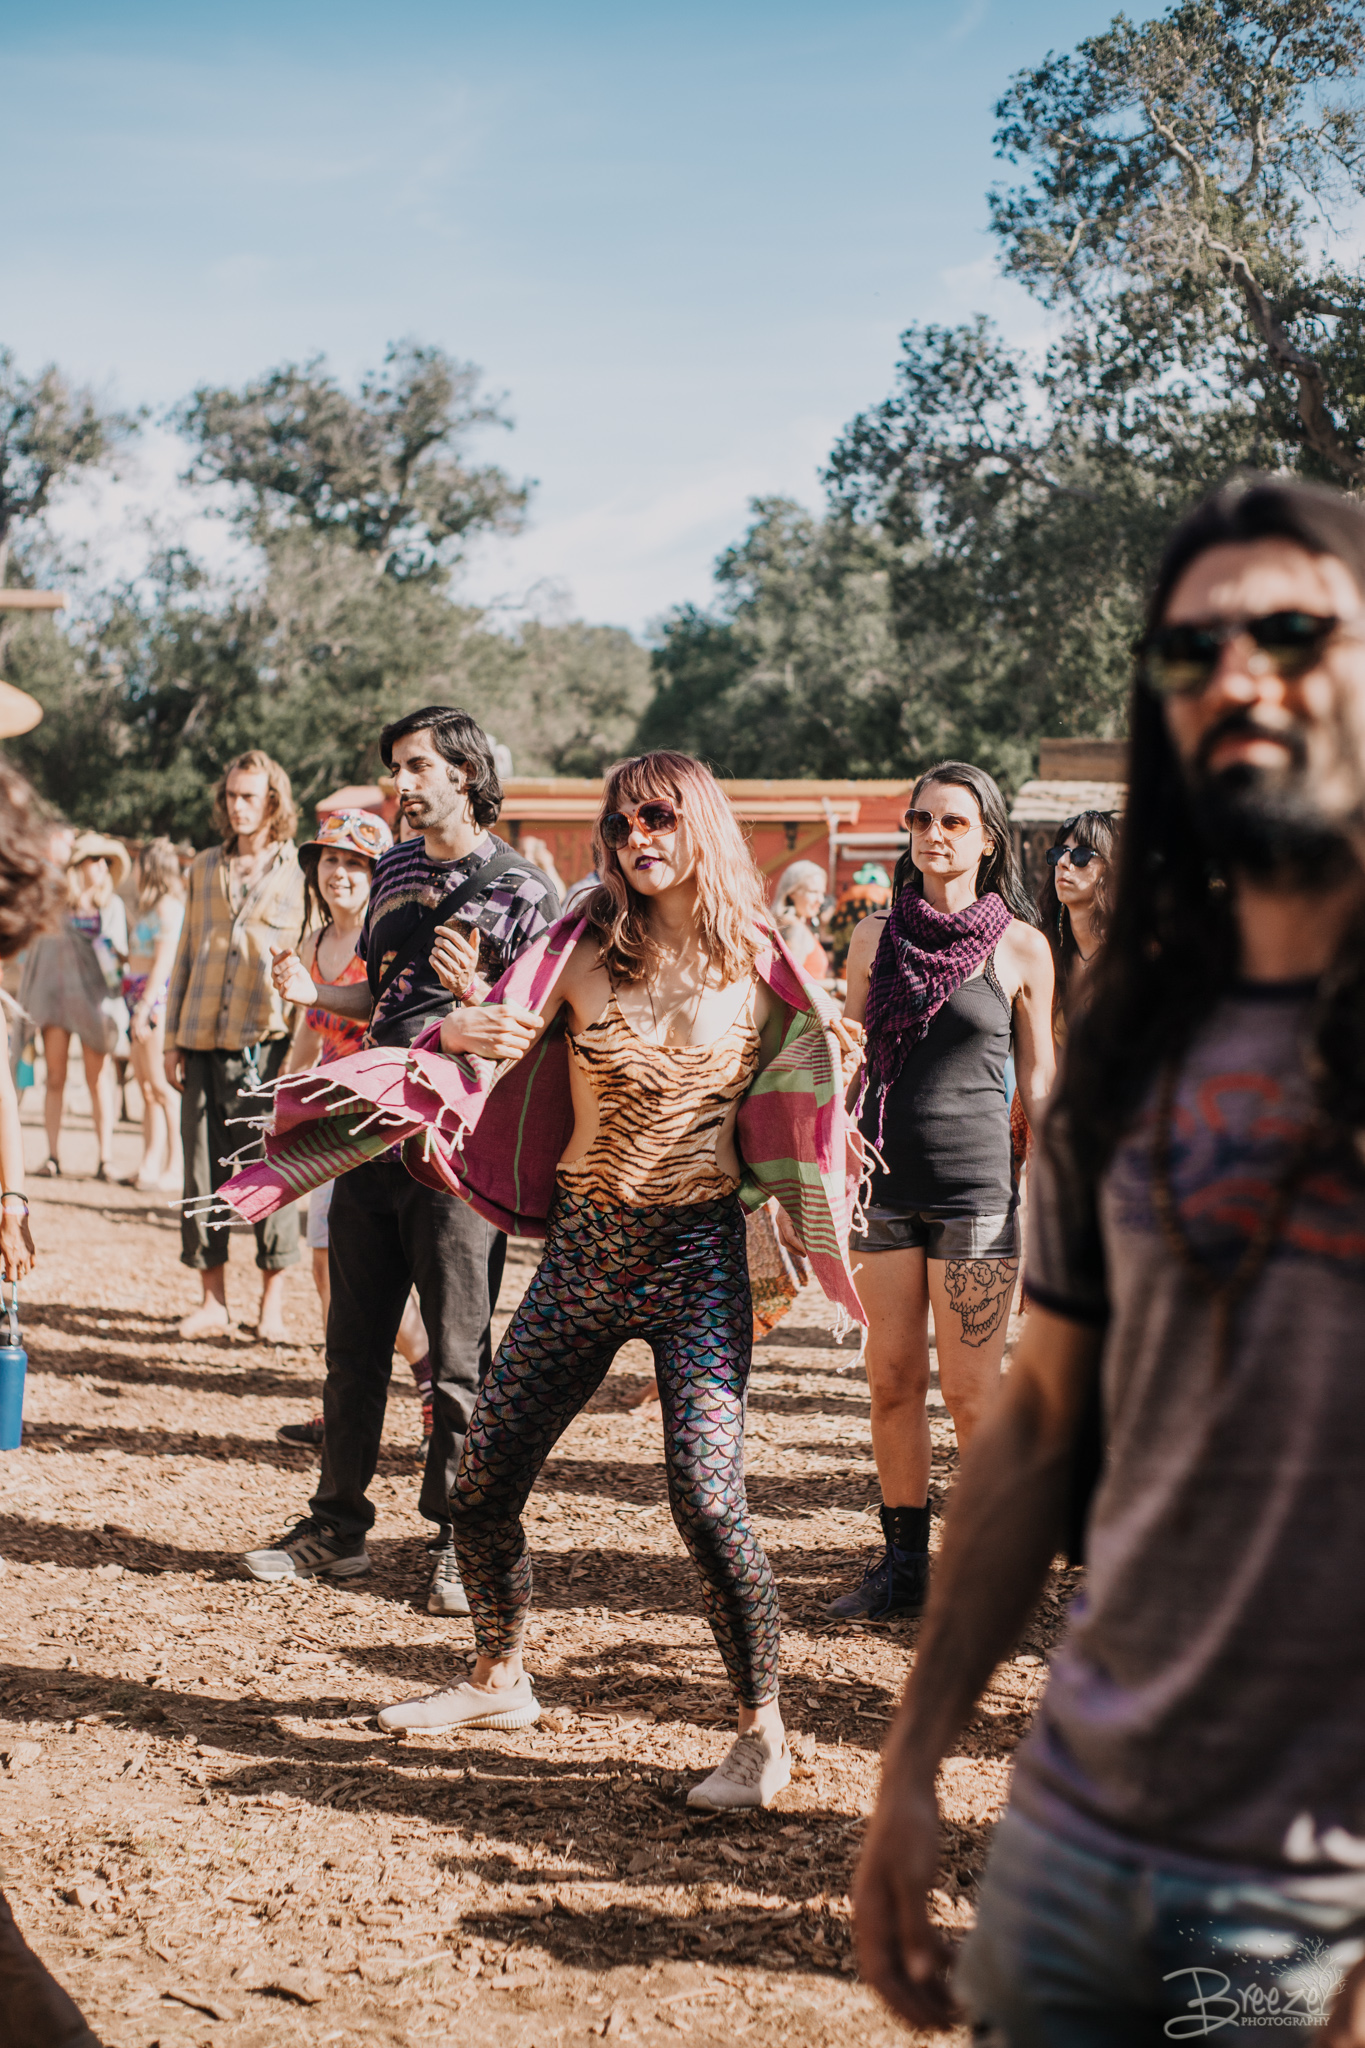 Lucidity.Festival.2019.Brie'Ana Breeze Photography and Media-7341.jpg